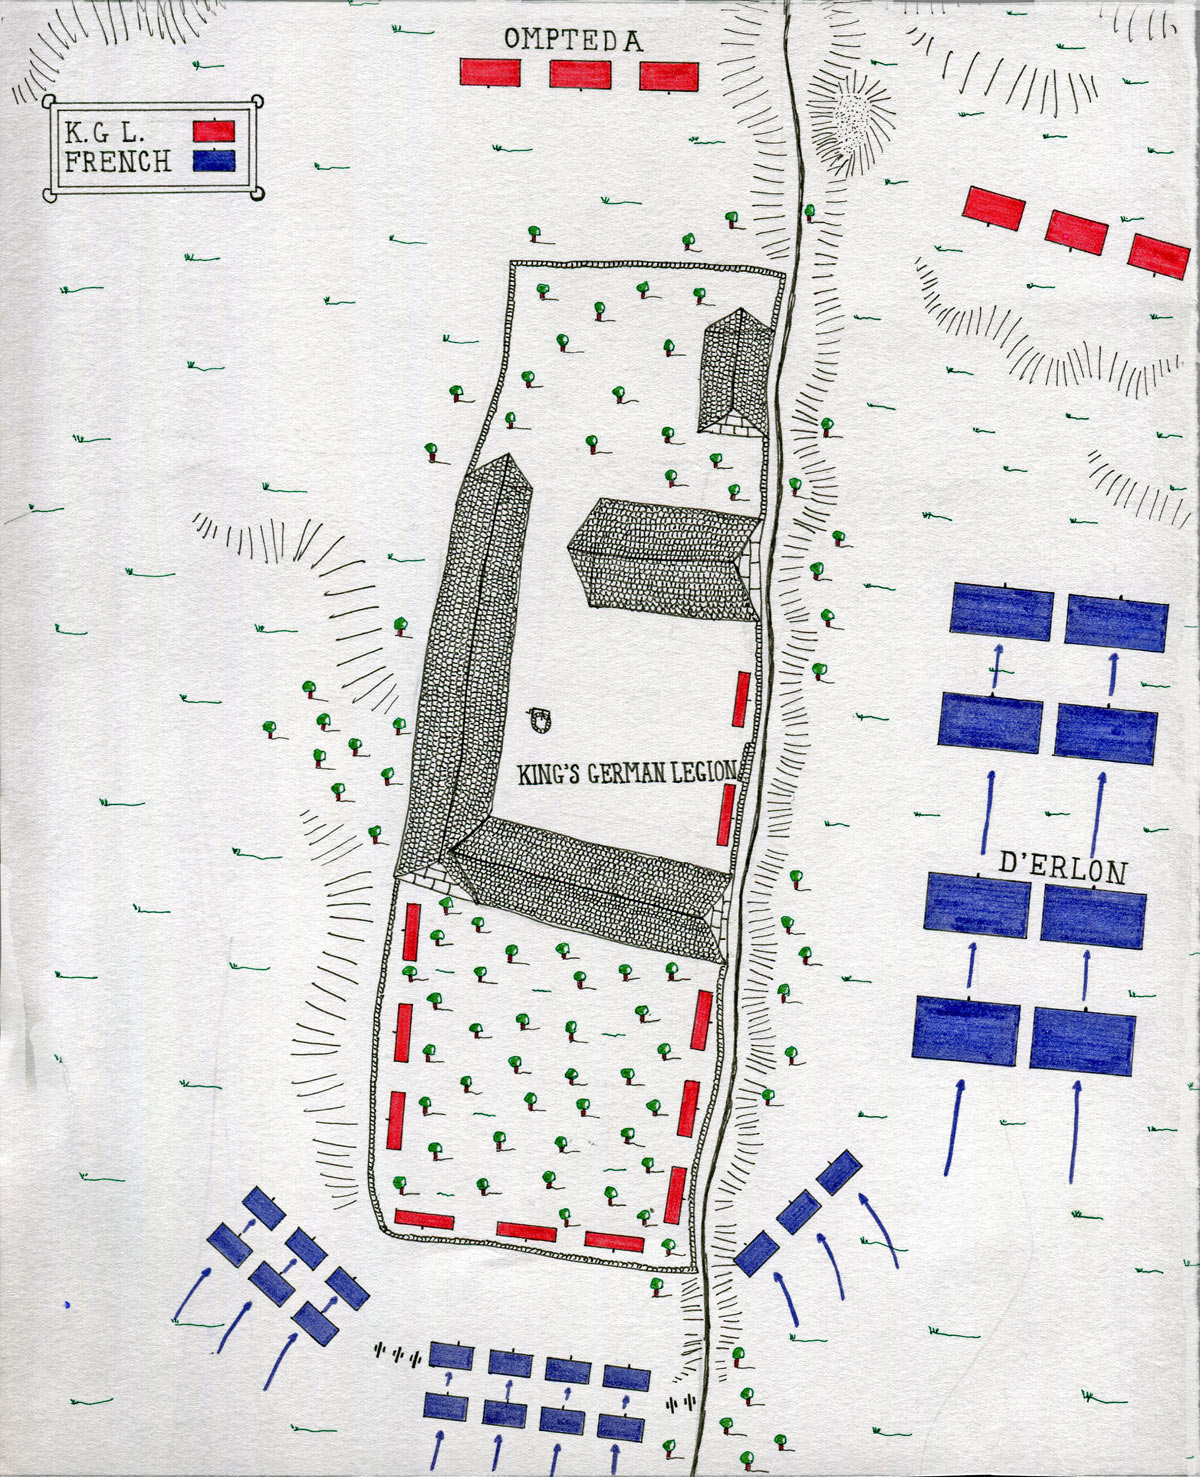 Map of La Haye Sainte Farm at the Battle of Waterloo on 18th June 1815: map by John Fawkes